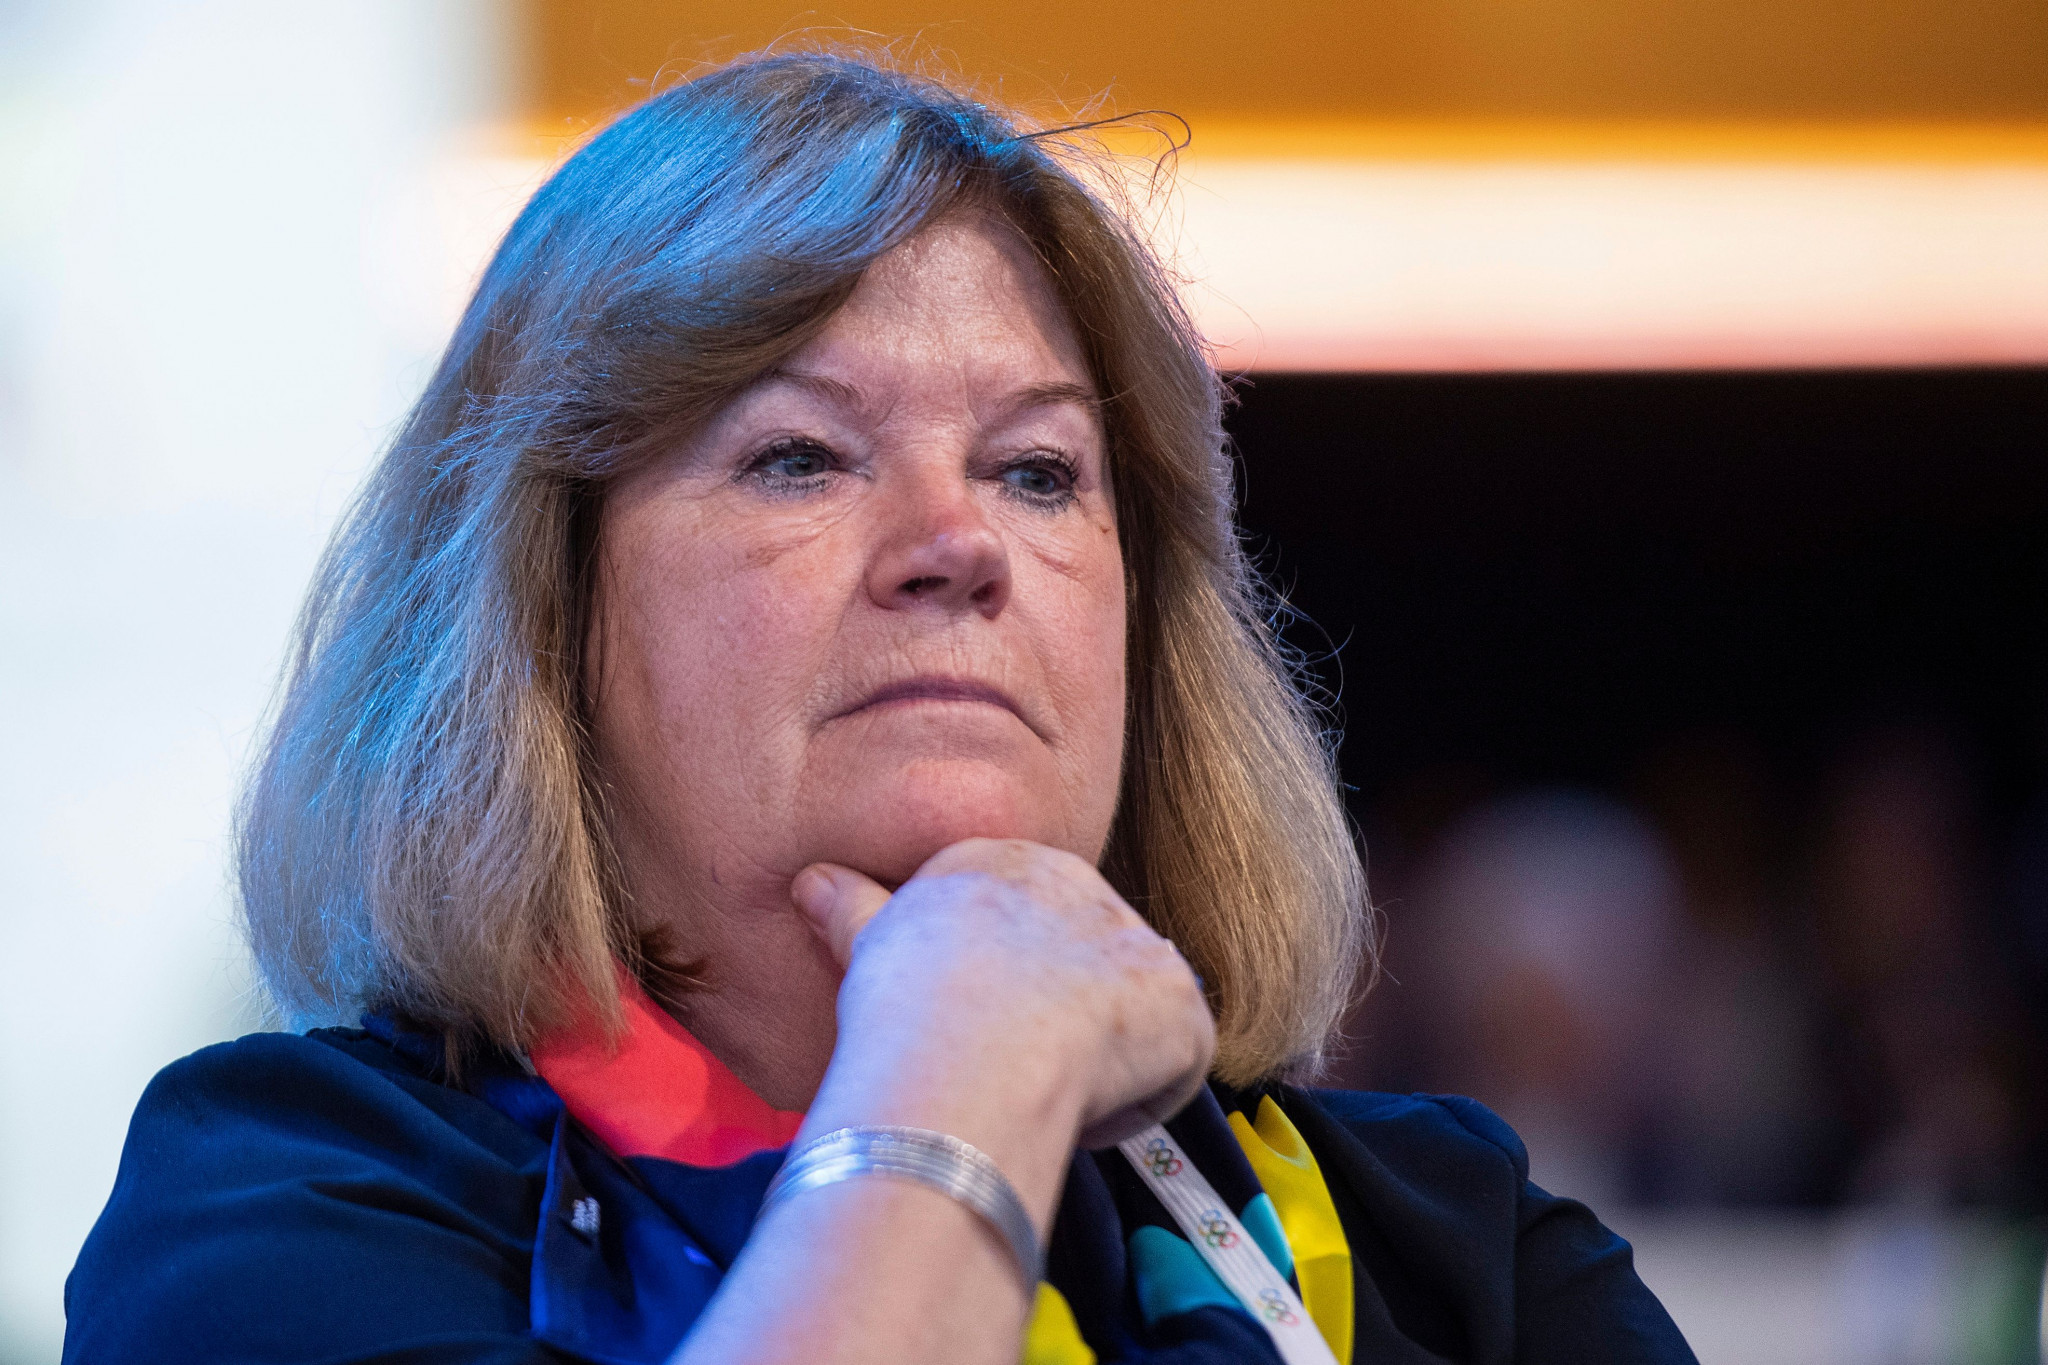 IOC member Gunilla Lindberg challenged the membership to prove the New Norm reforms were not just talk by choosing Stockholm Åre 2026 to host the Winter Olympic and Paralympic Games ©Getty Images